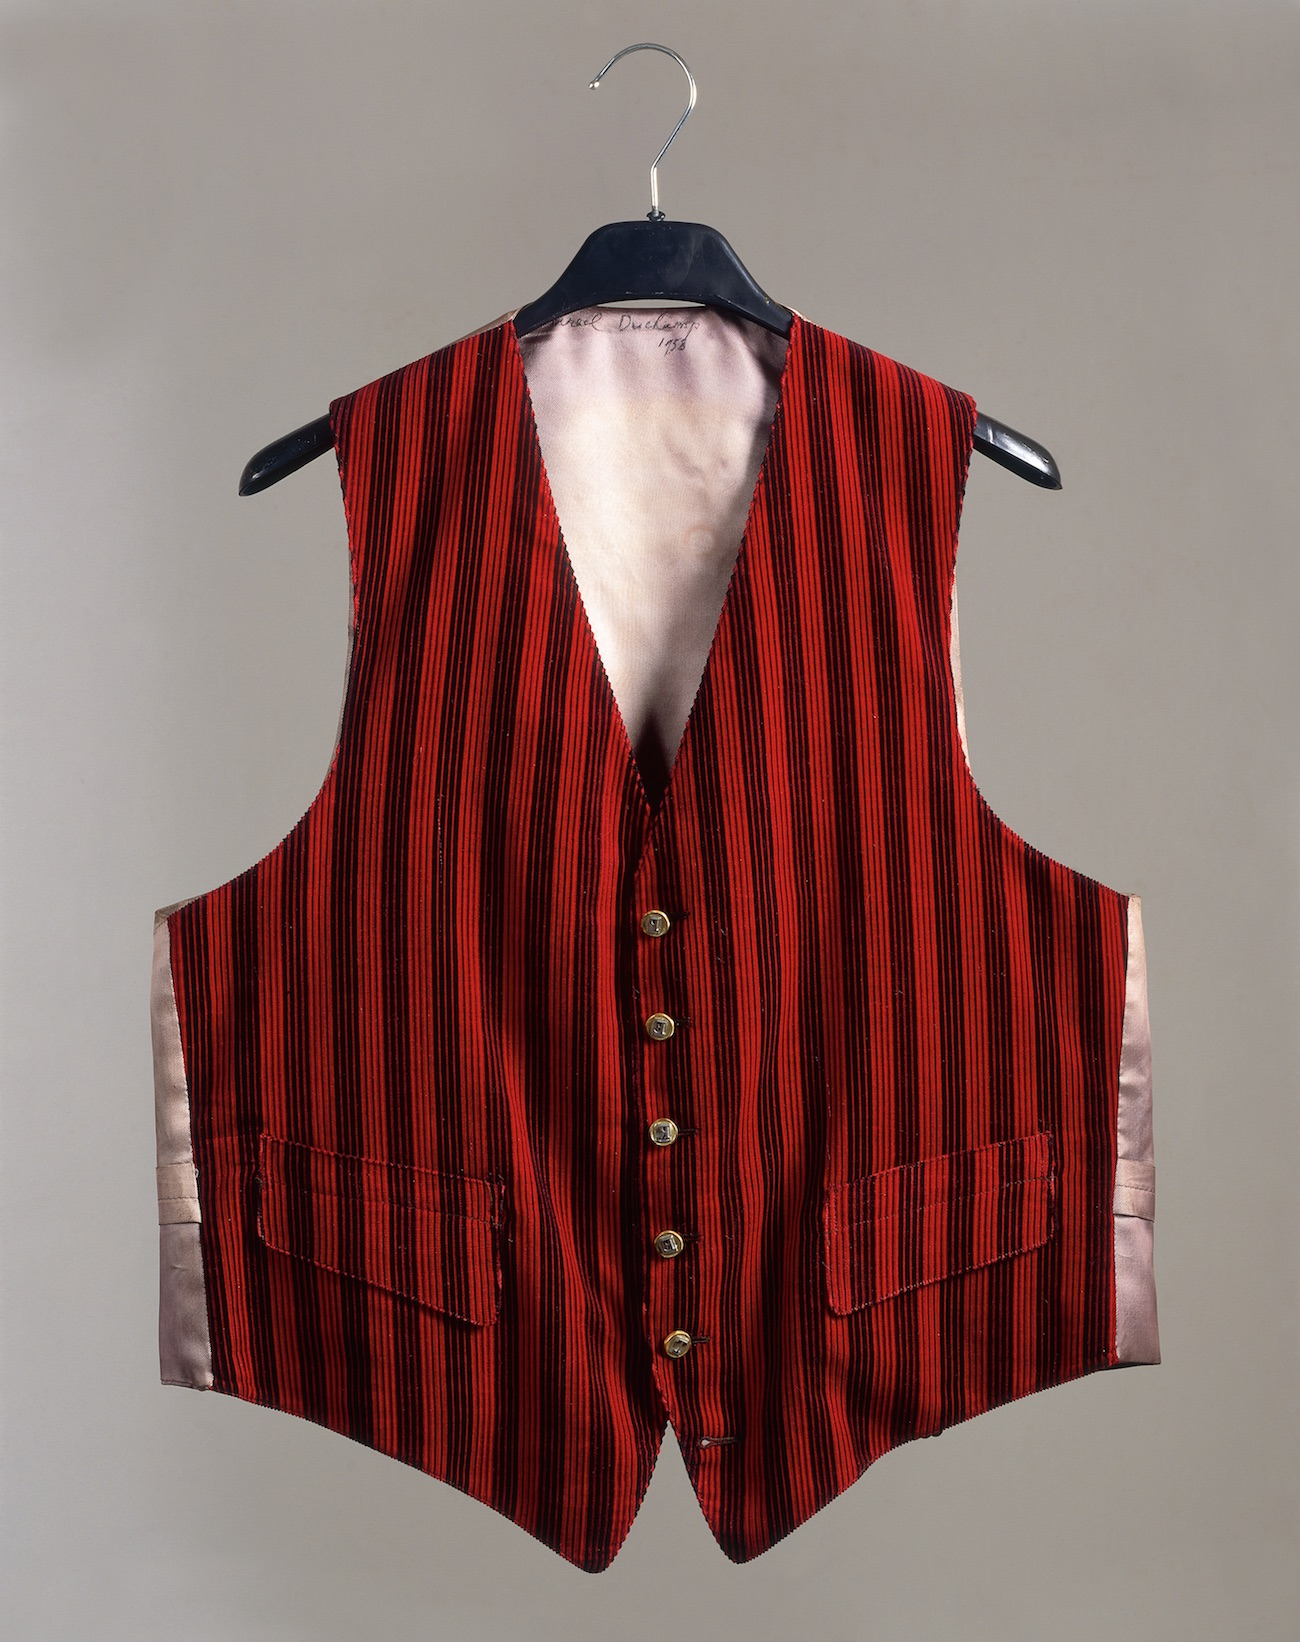 Marcel Duchamp, Waistcoat for Benjamin Péret (1958) Chaleco de franela con rayas rojas y negras. The Vera and Arturo Schwartz Dada and Surrealist Art Collection